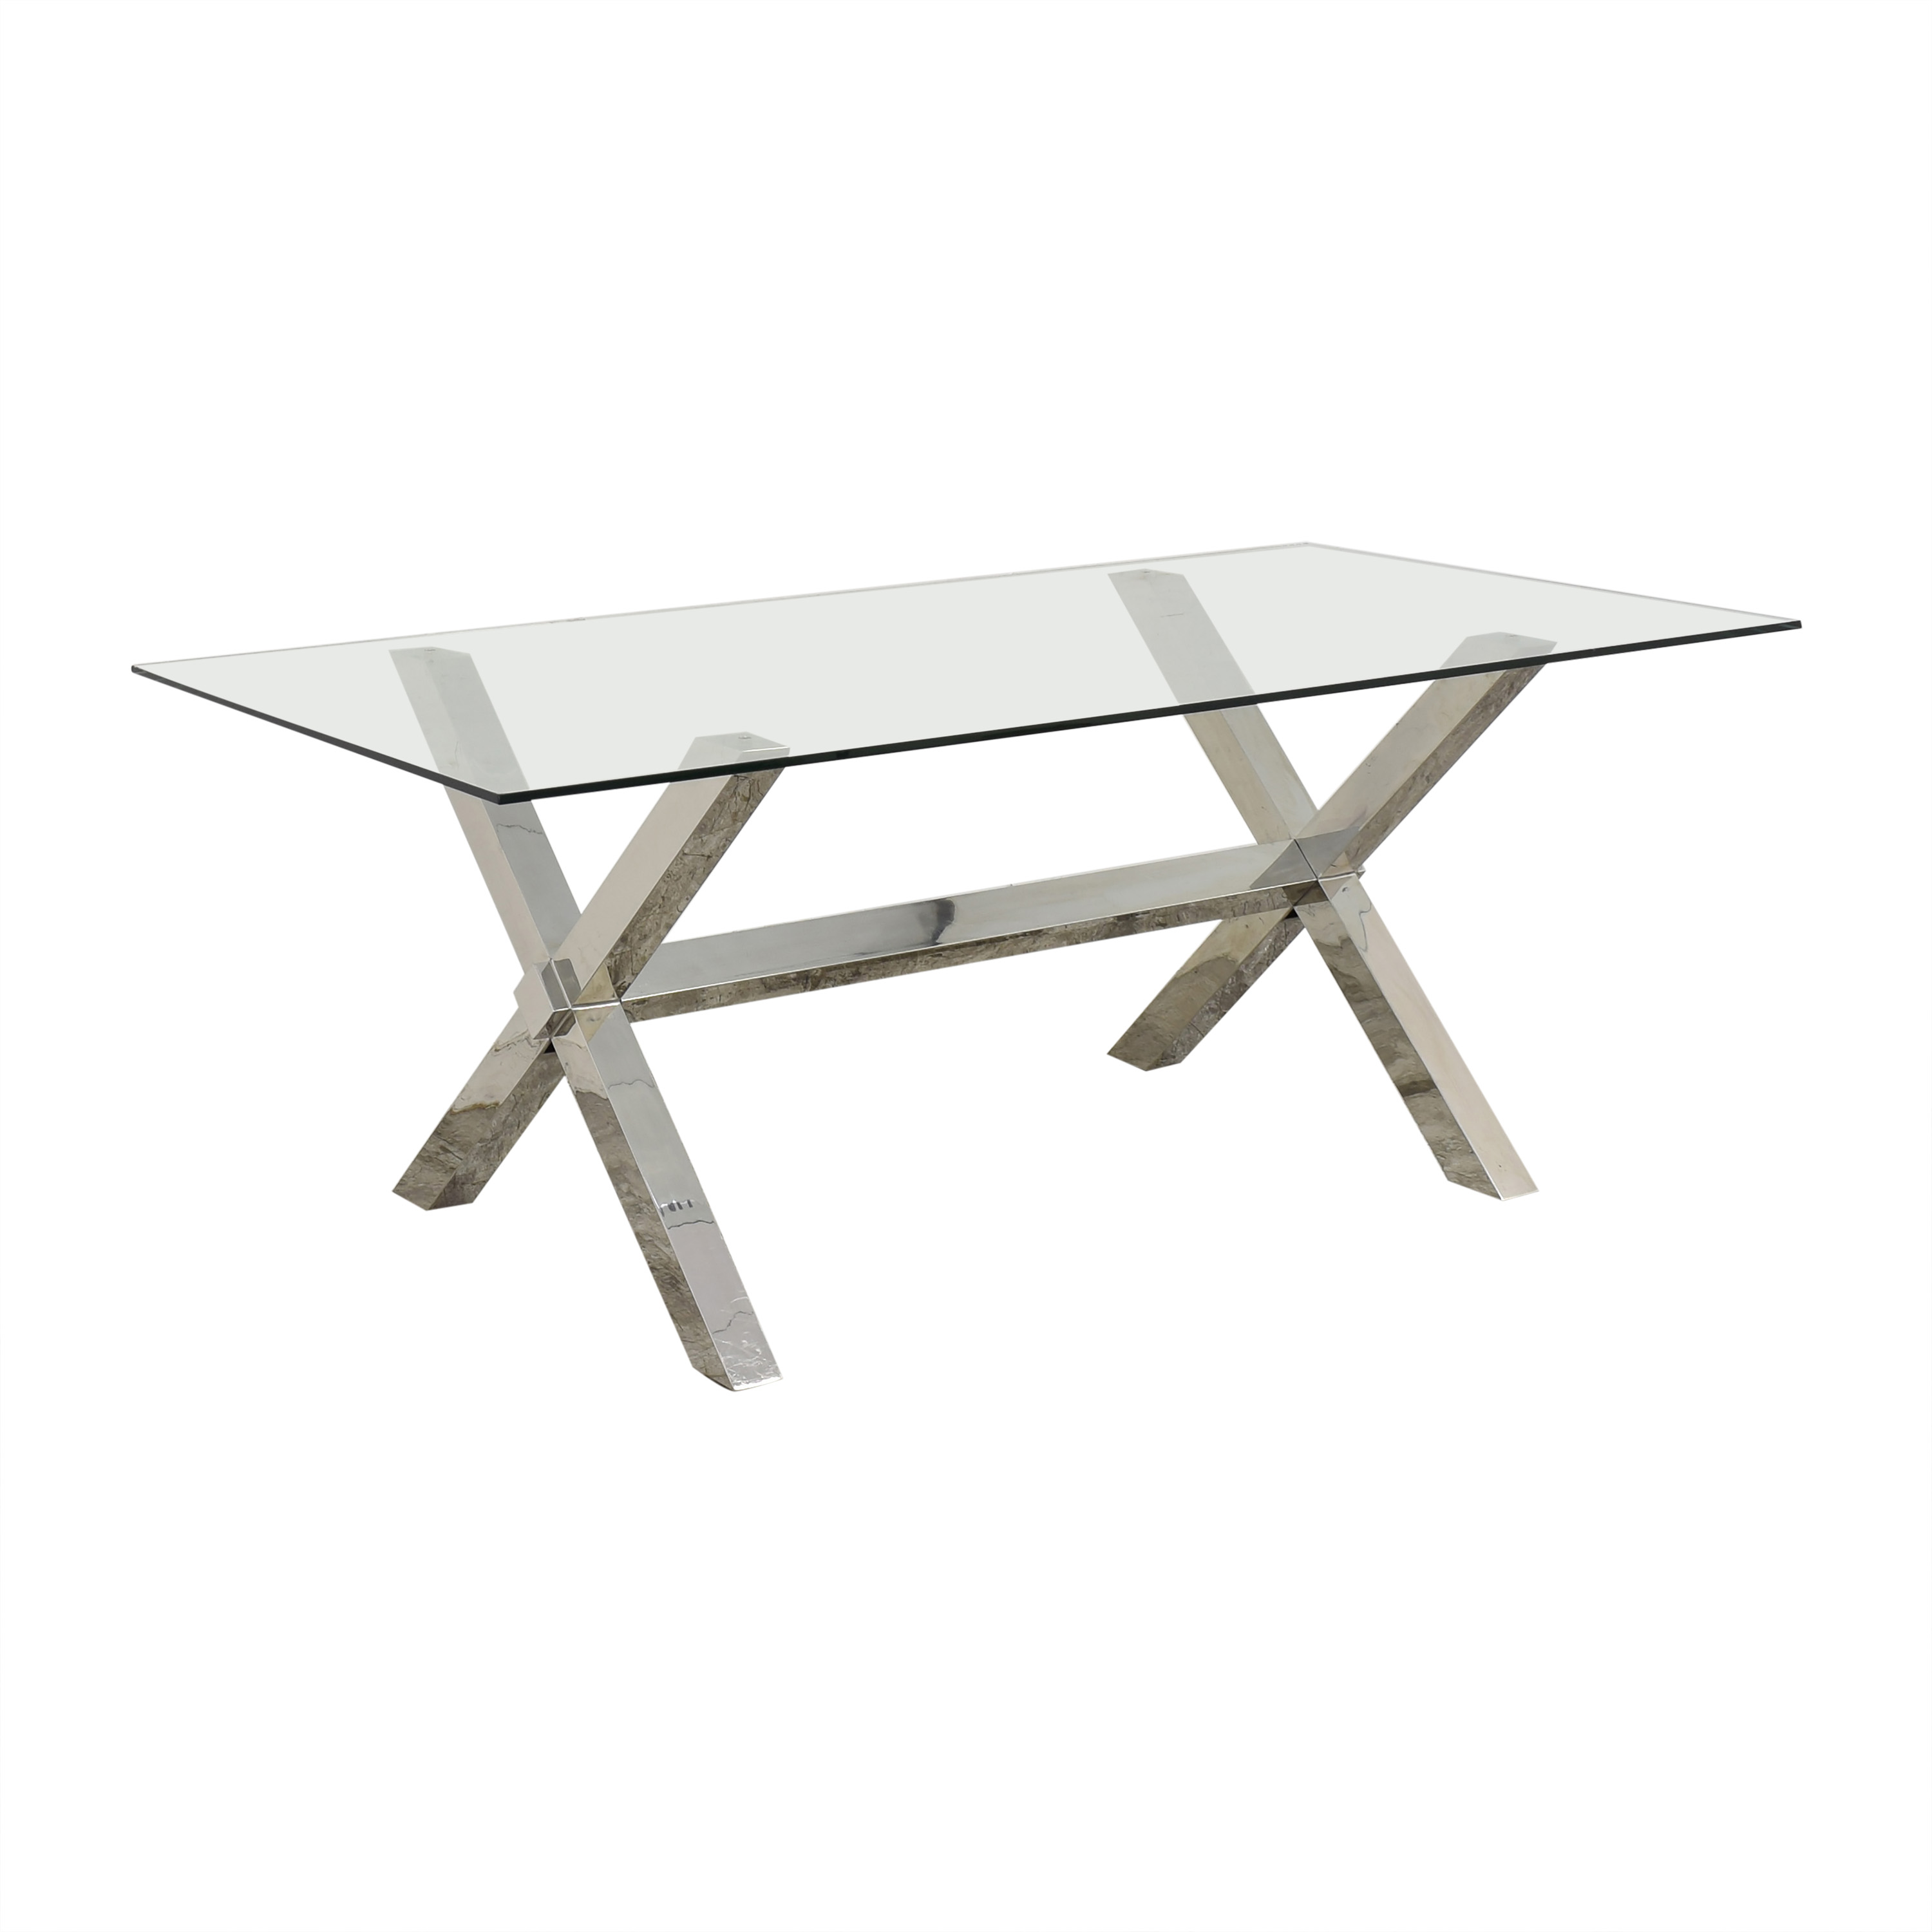 Z Gallerie Z-Gallerie Axis Dining Table second hand